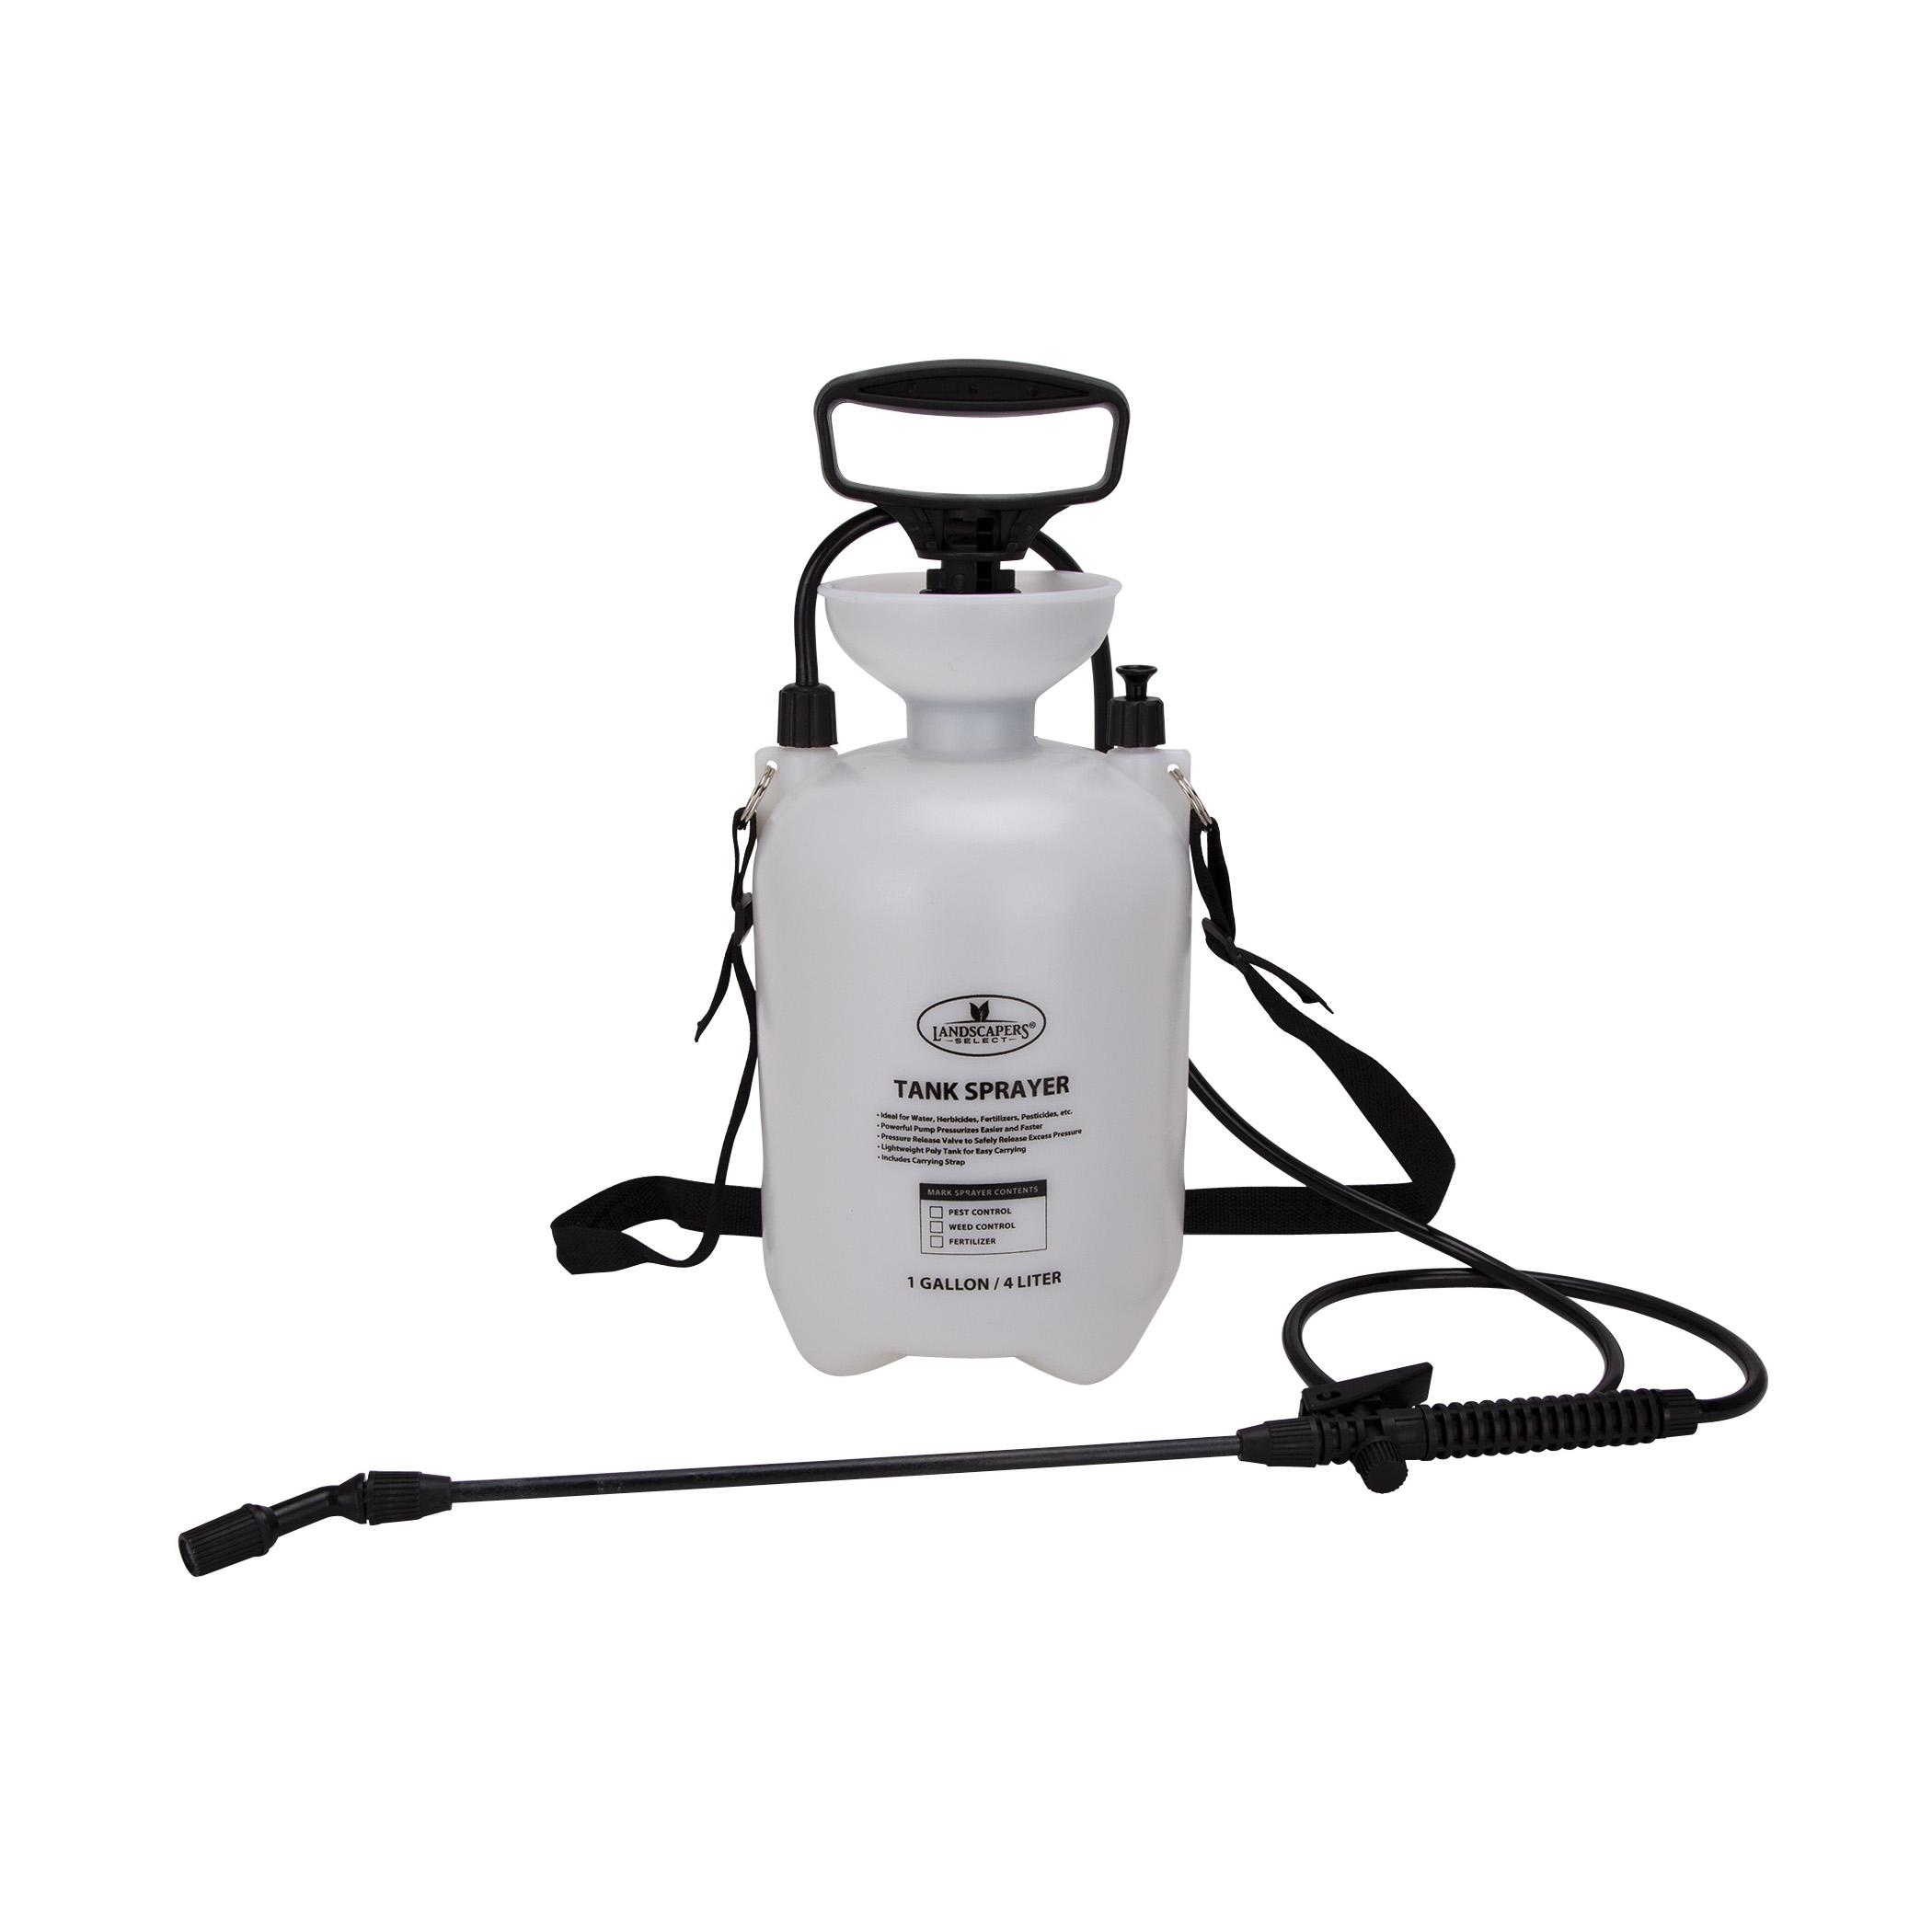 Picture of Landscapers Select SX-4B Compression Sprayer, 1 gal Tank, Polyethylene Tank, 55 L Hose, White